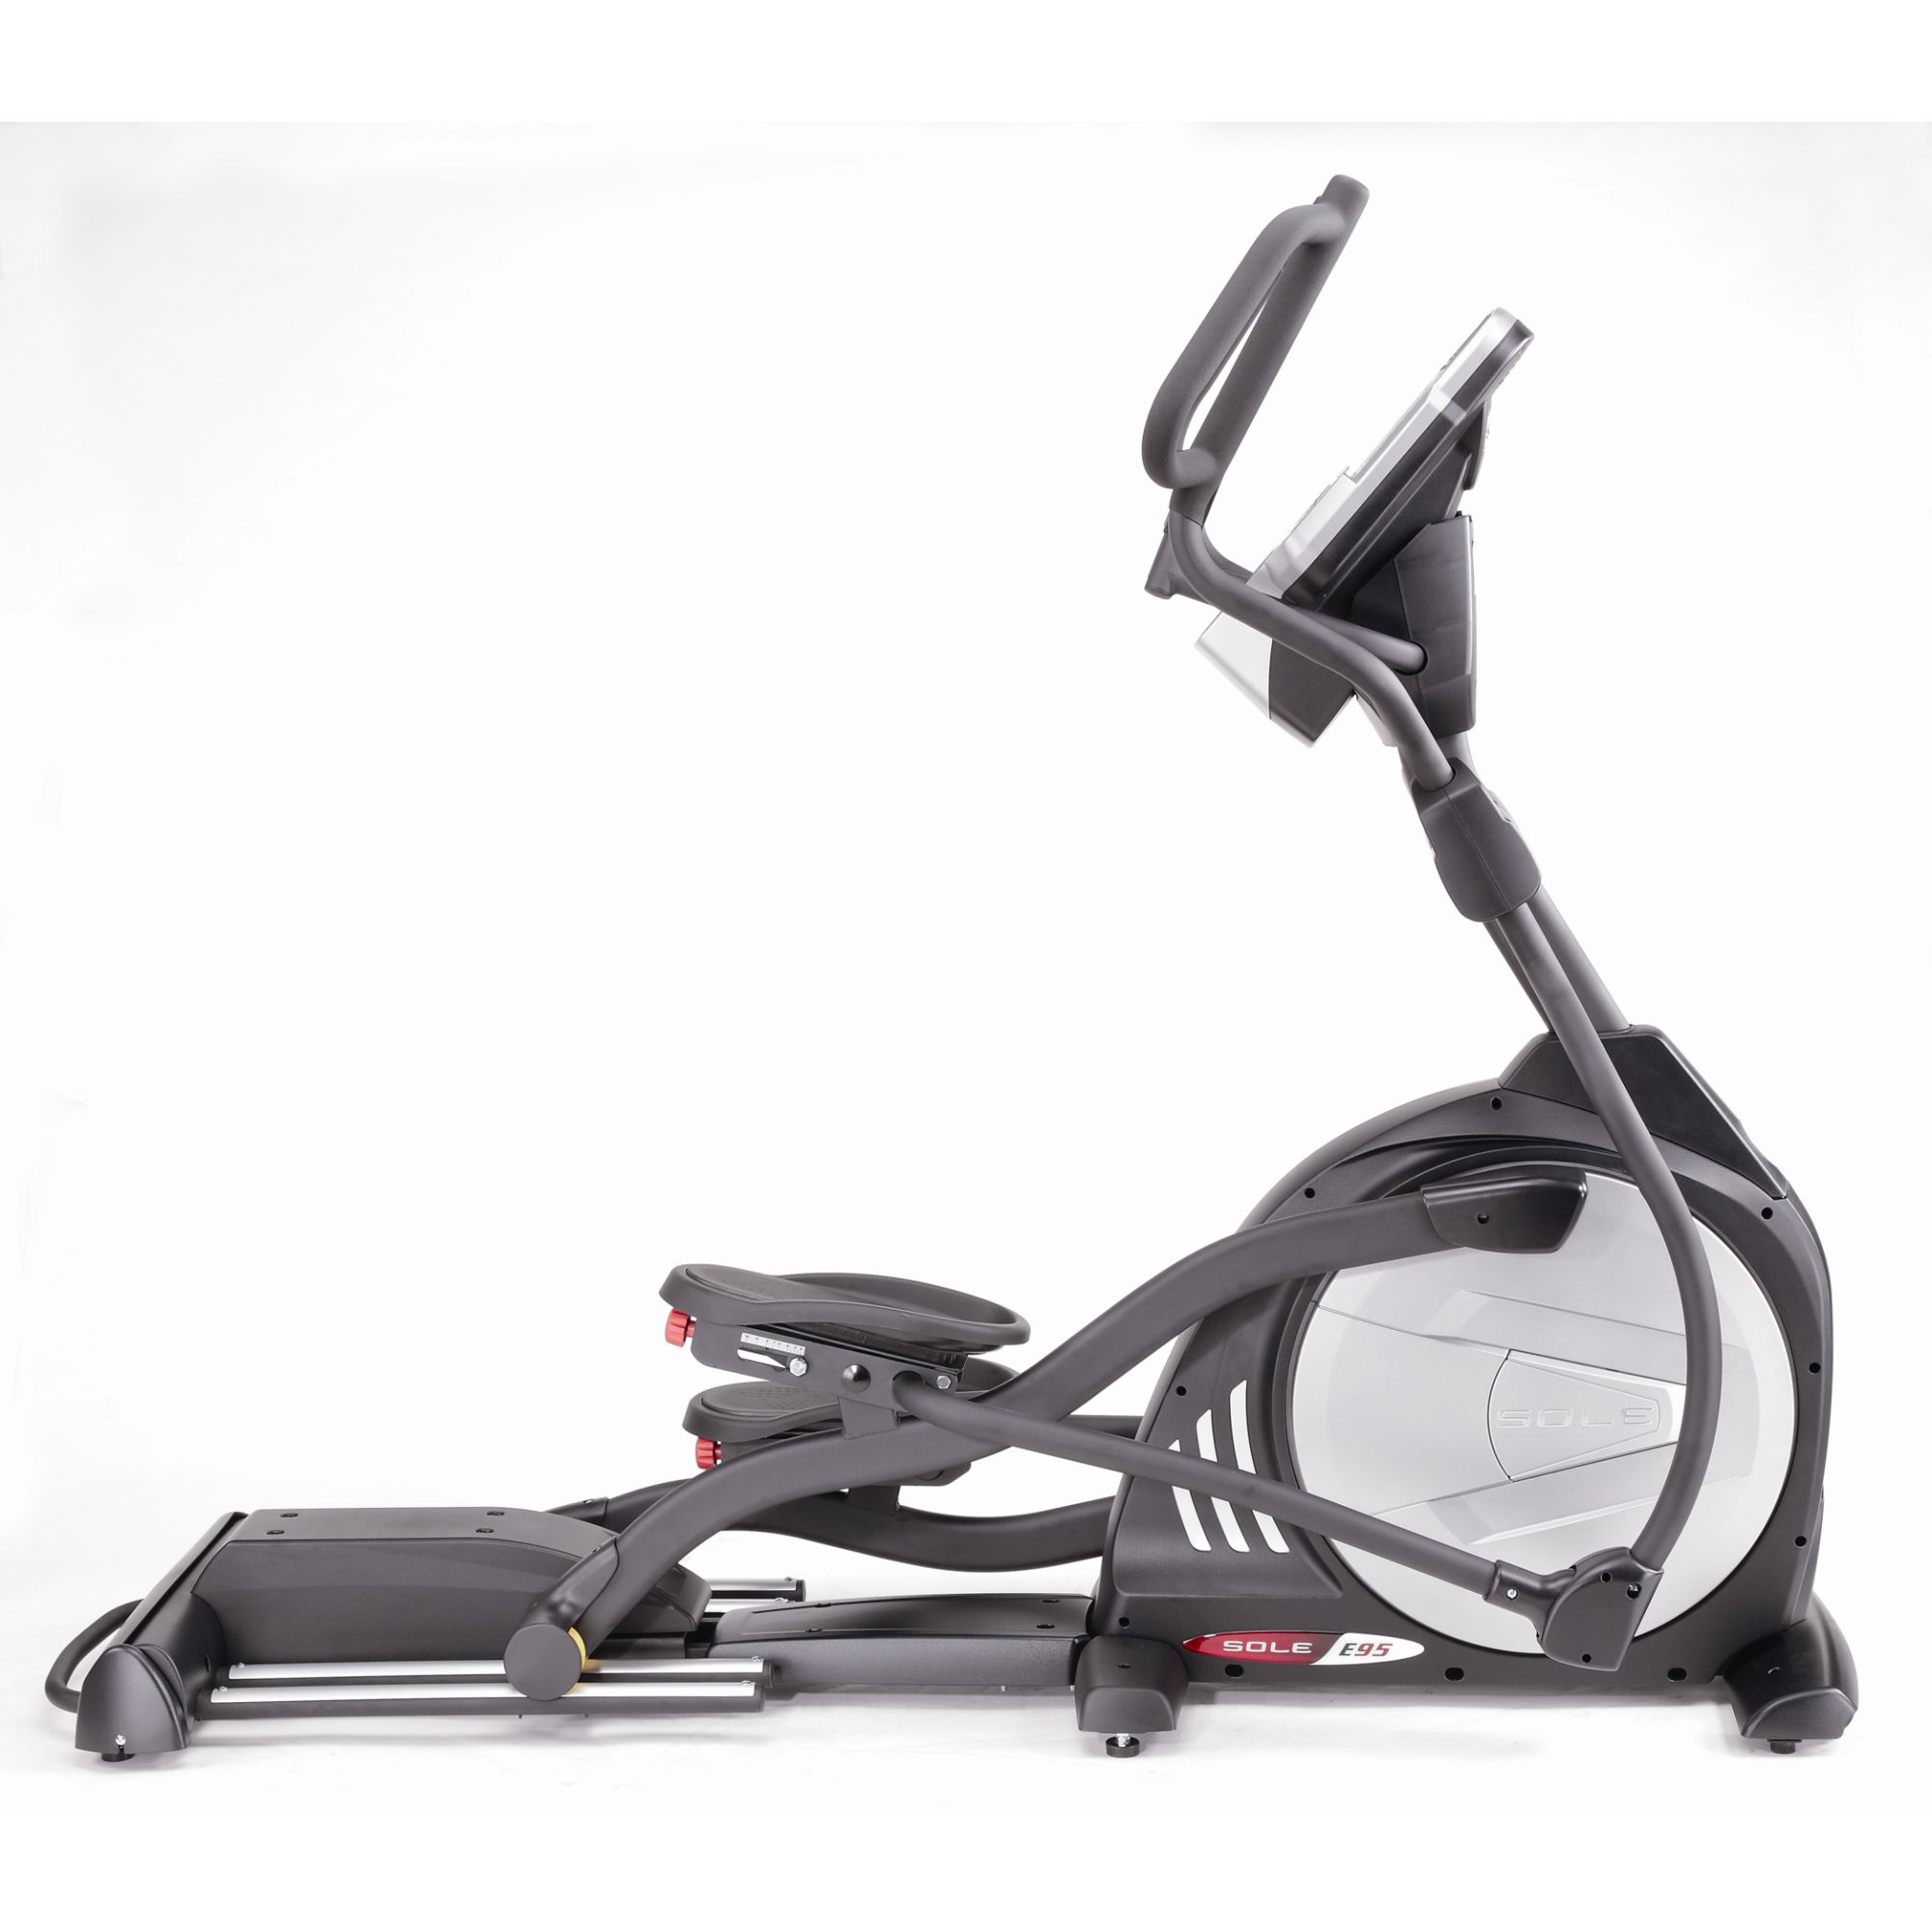 Sole E95 Elliptical - 2013 Model